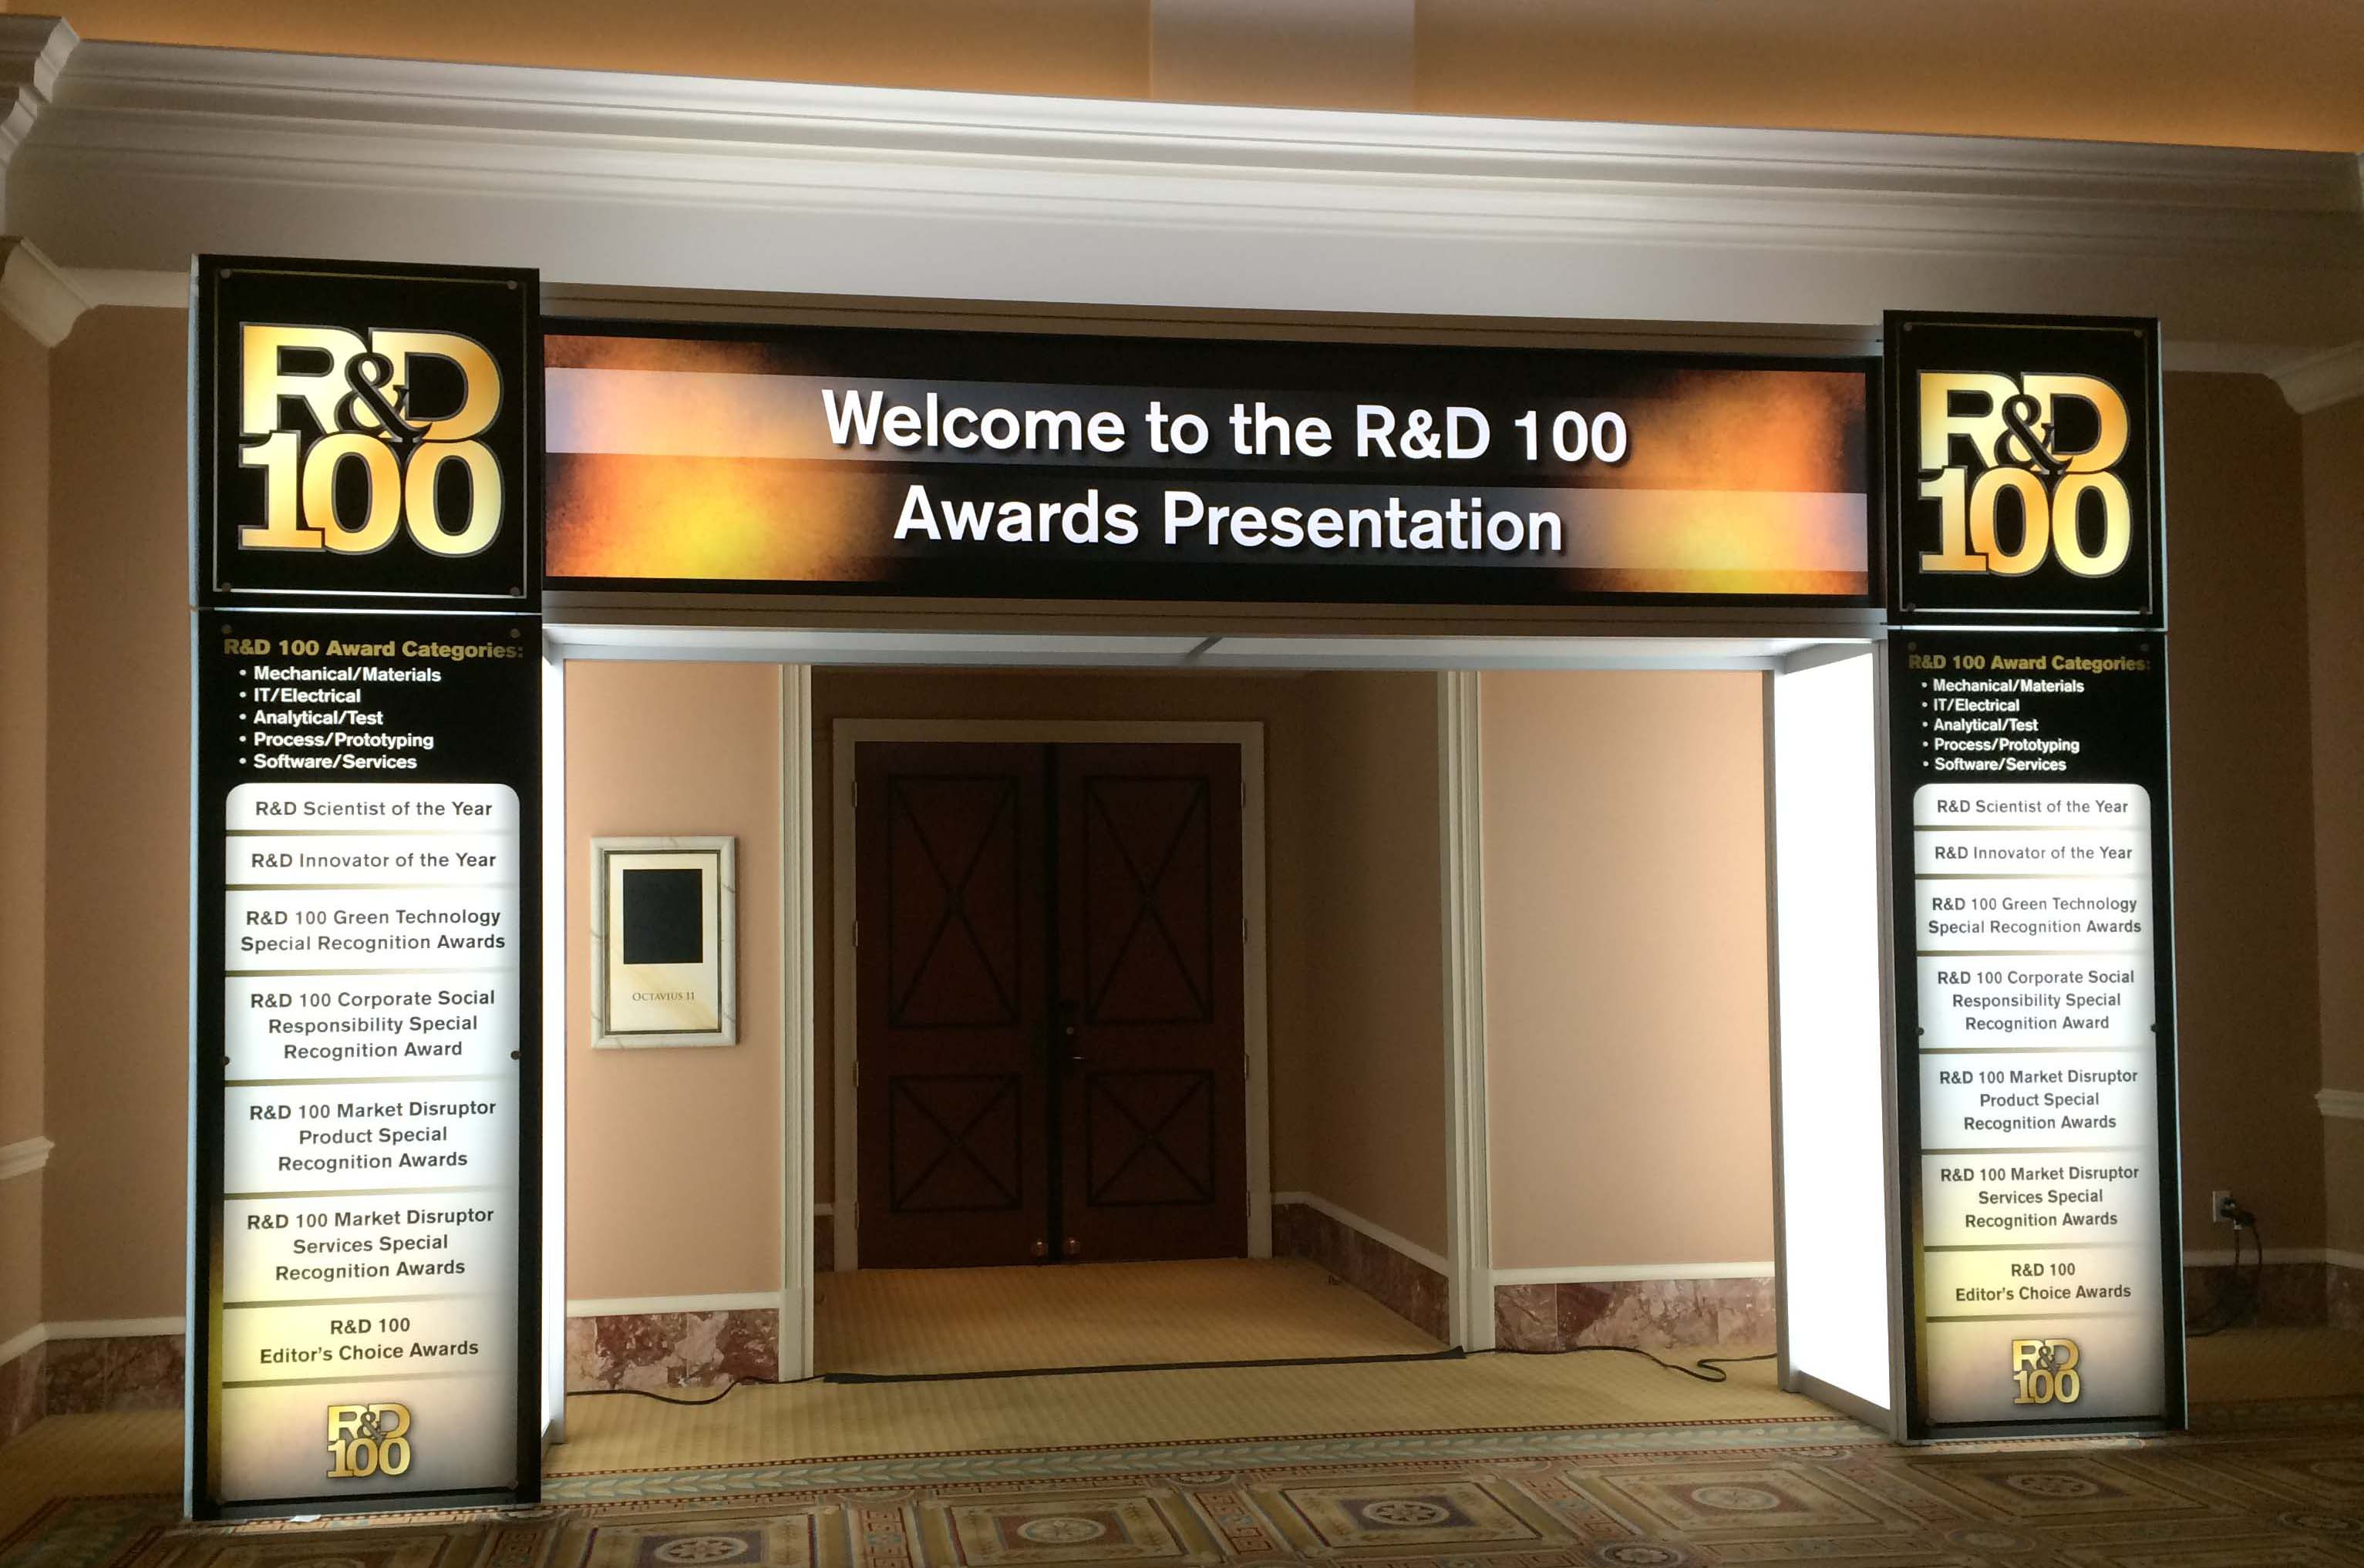 53rd R&D 100 Awards Entrance